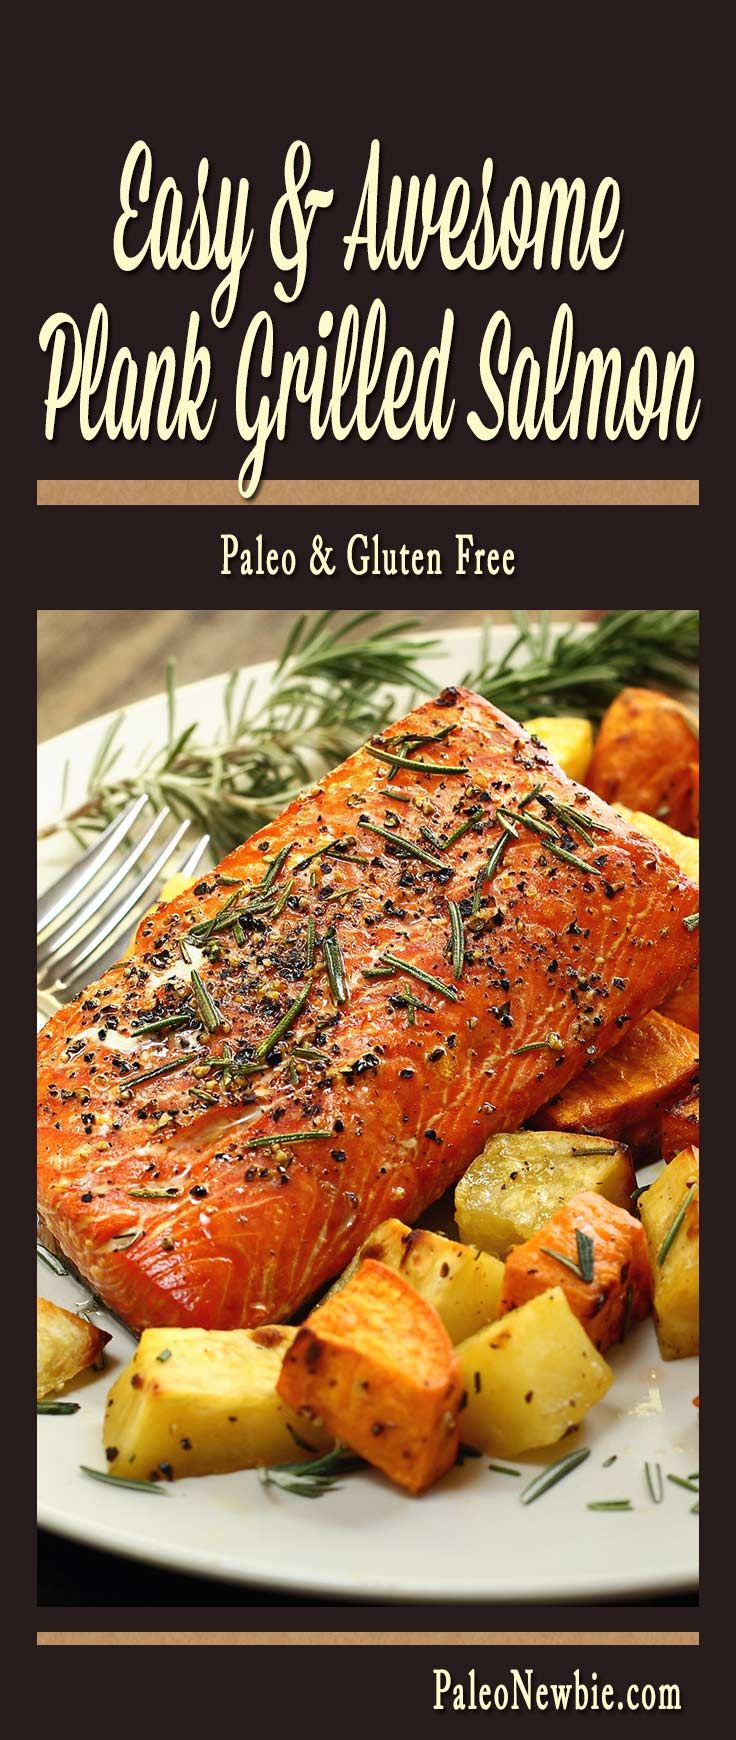 301 Best Images About Food ~ Here's To A Healthier Us Recipes! On Pinterest   Food, Healthy Food And Kitchen